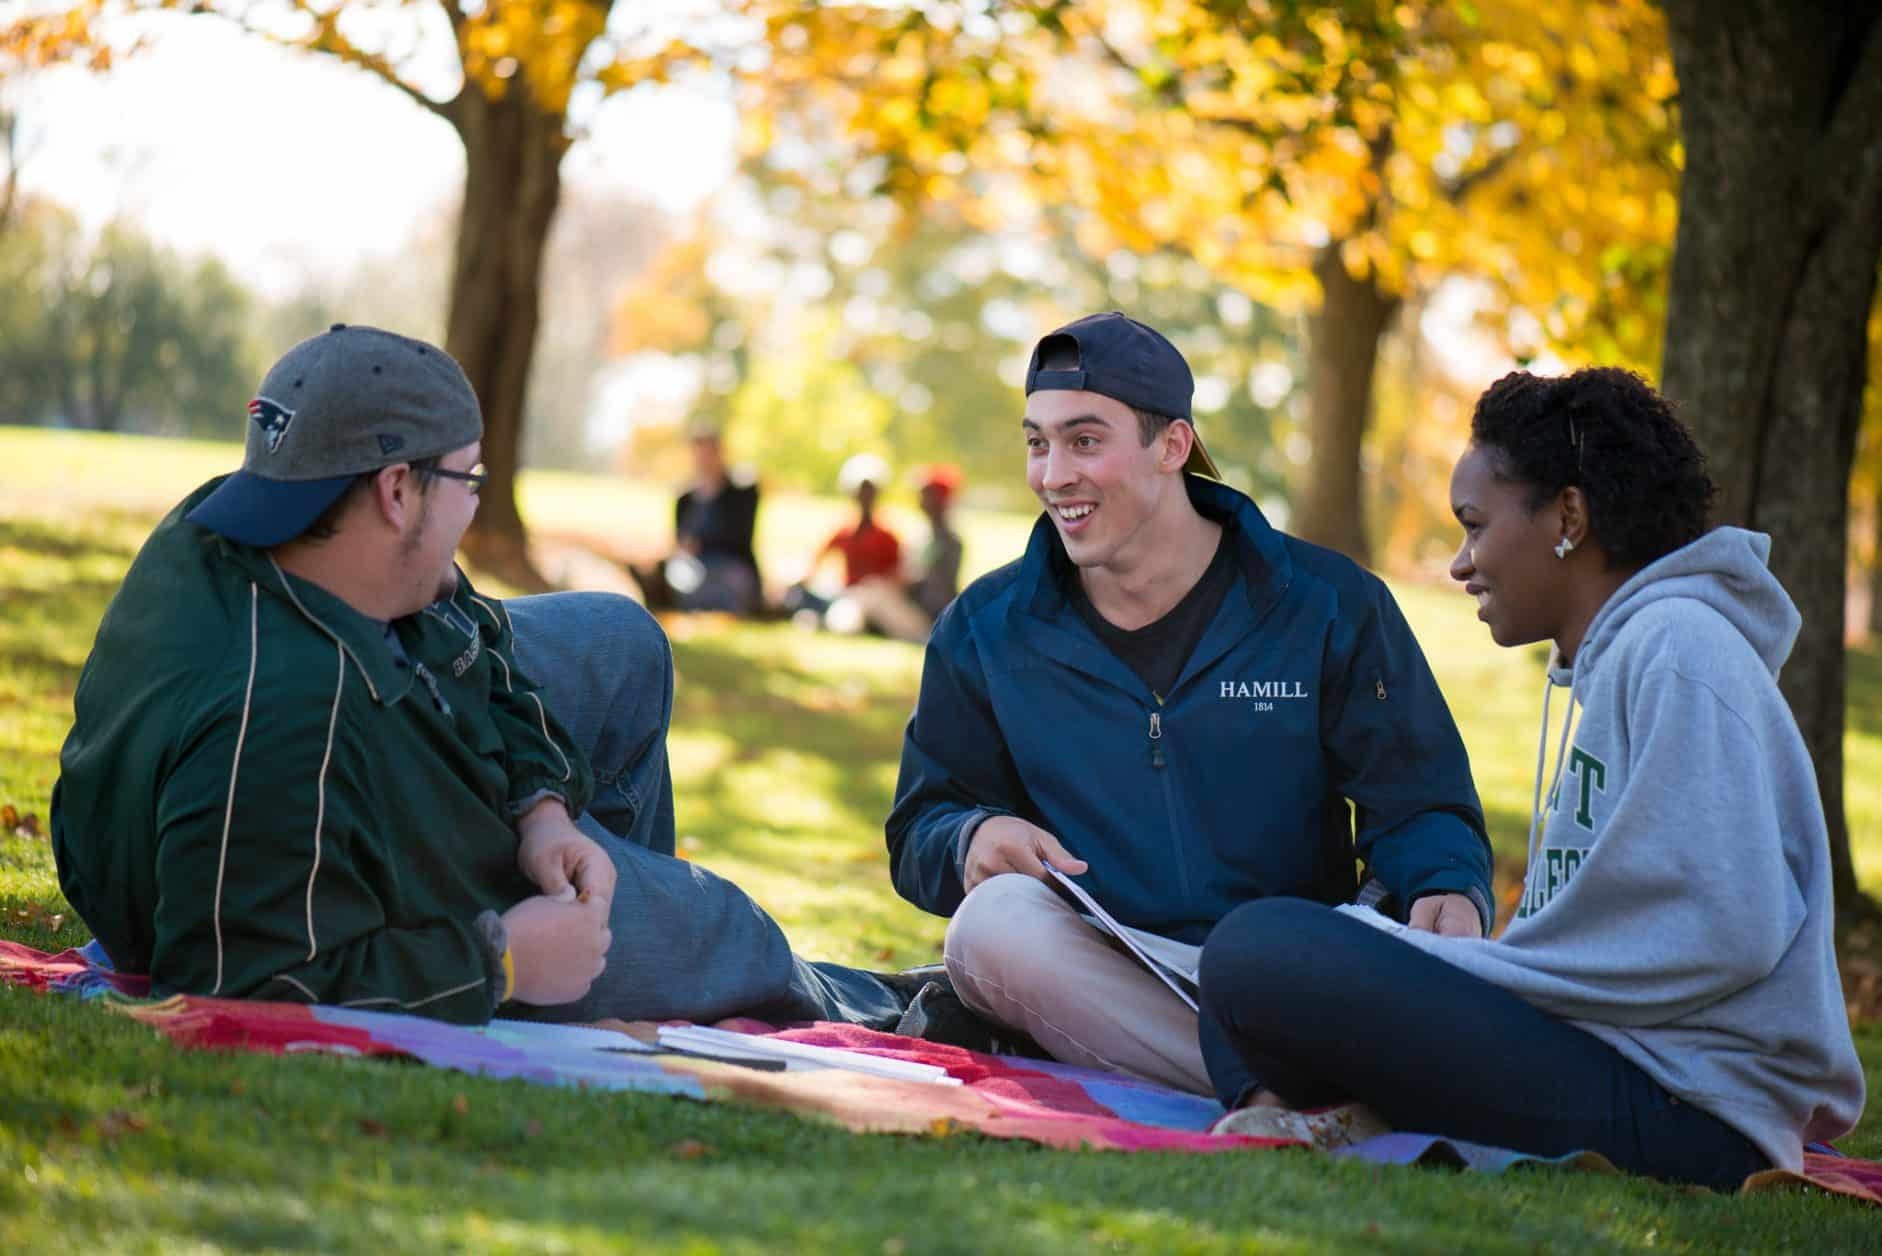 Female students, male students, diversity, autumn in Vermont, trees, relaxing, chatting